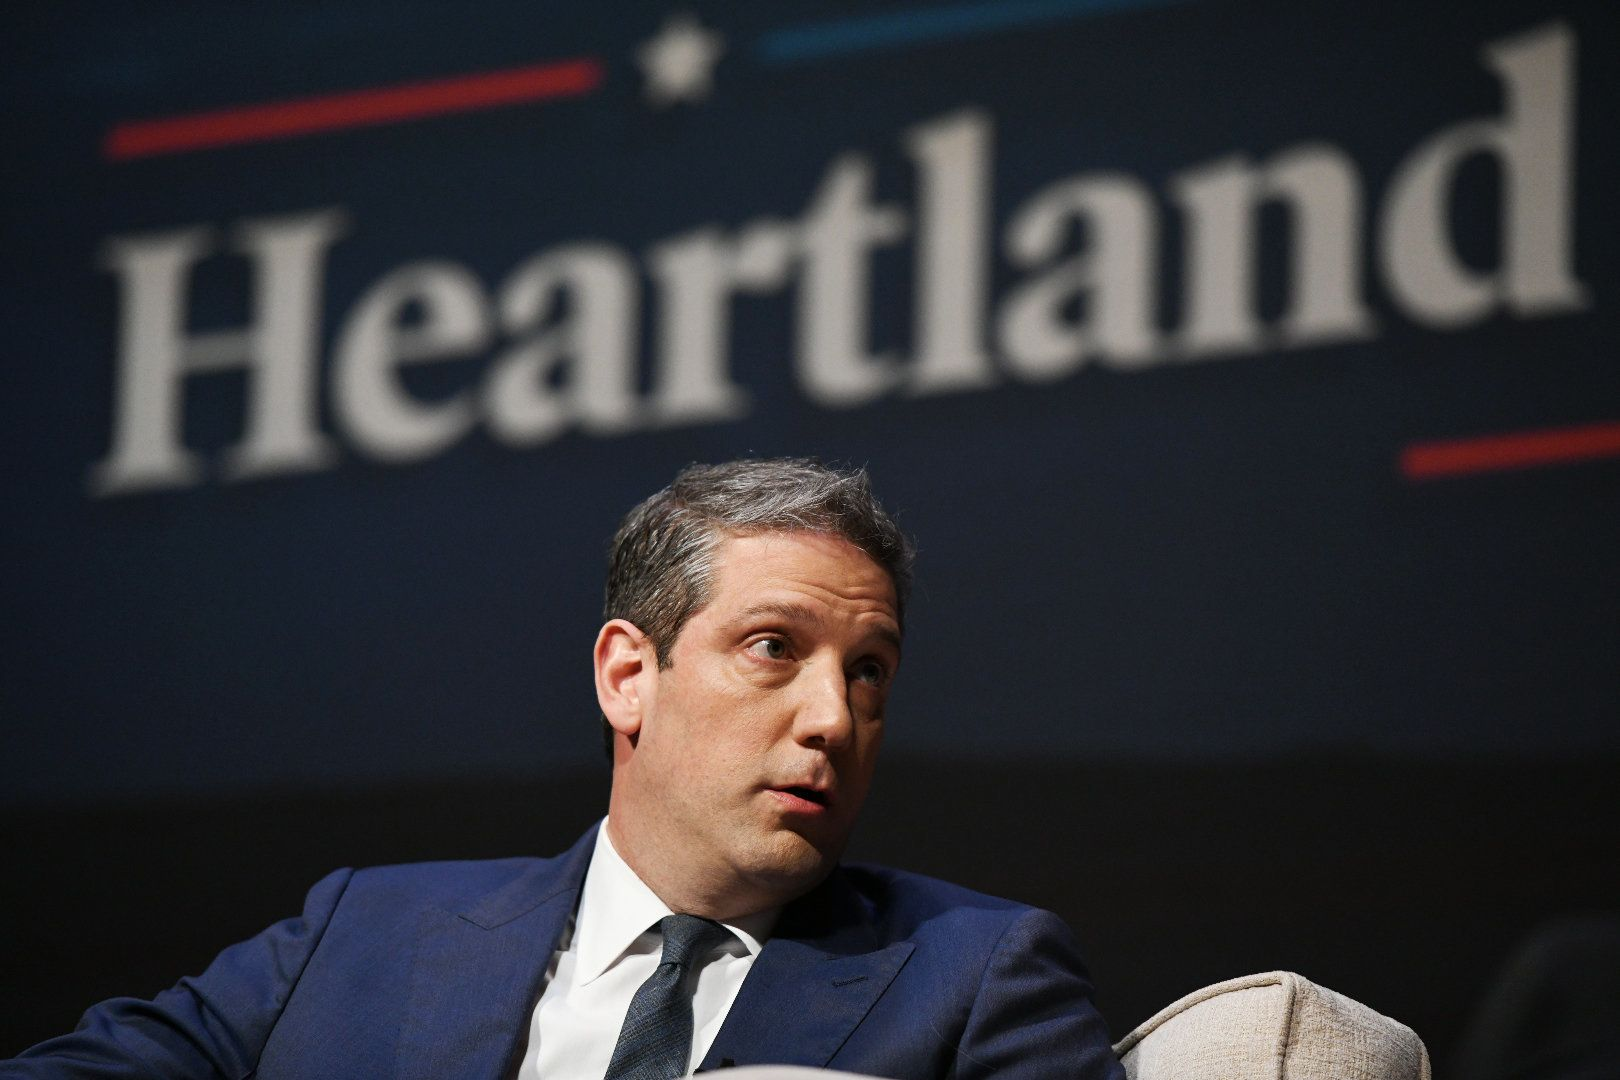 Tim Ryan participates in the Heartland Forum.